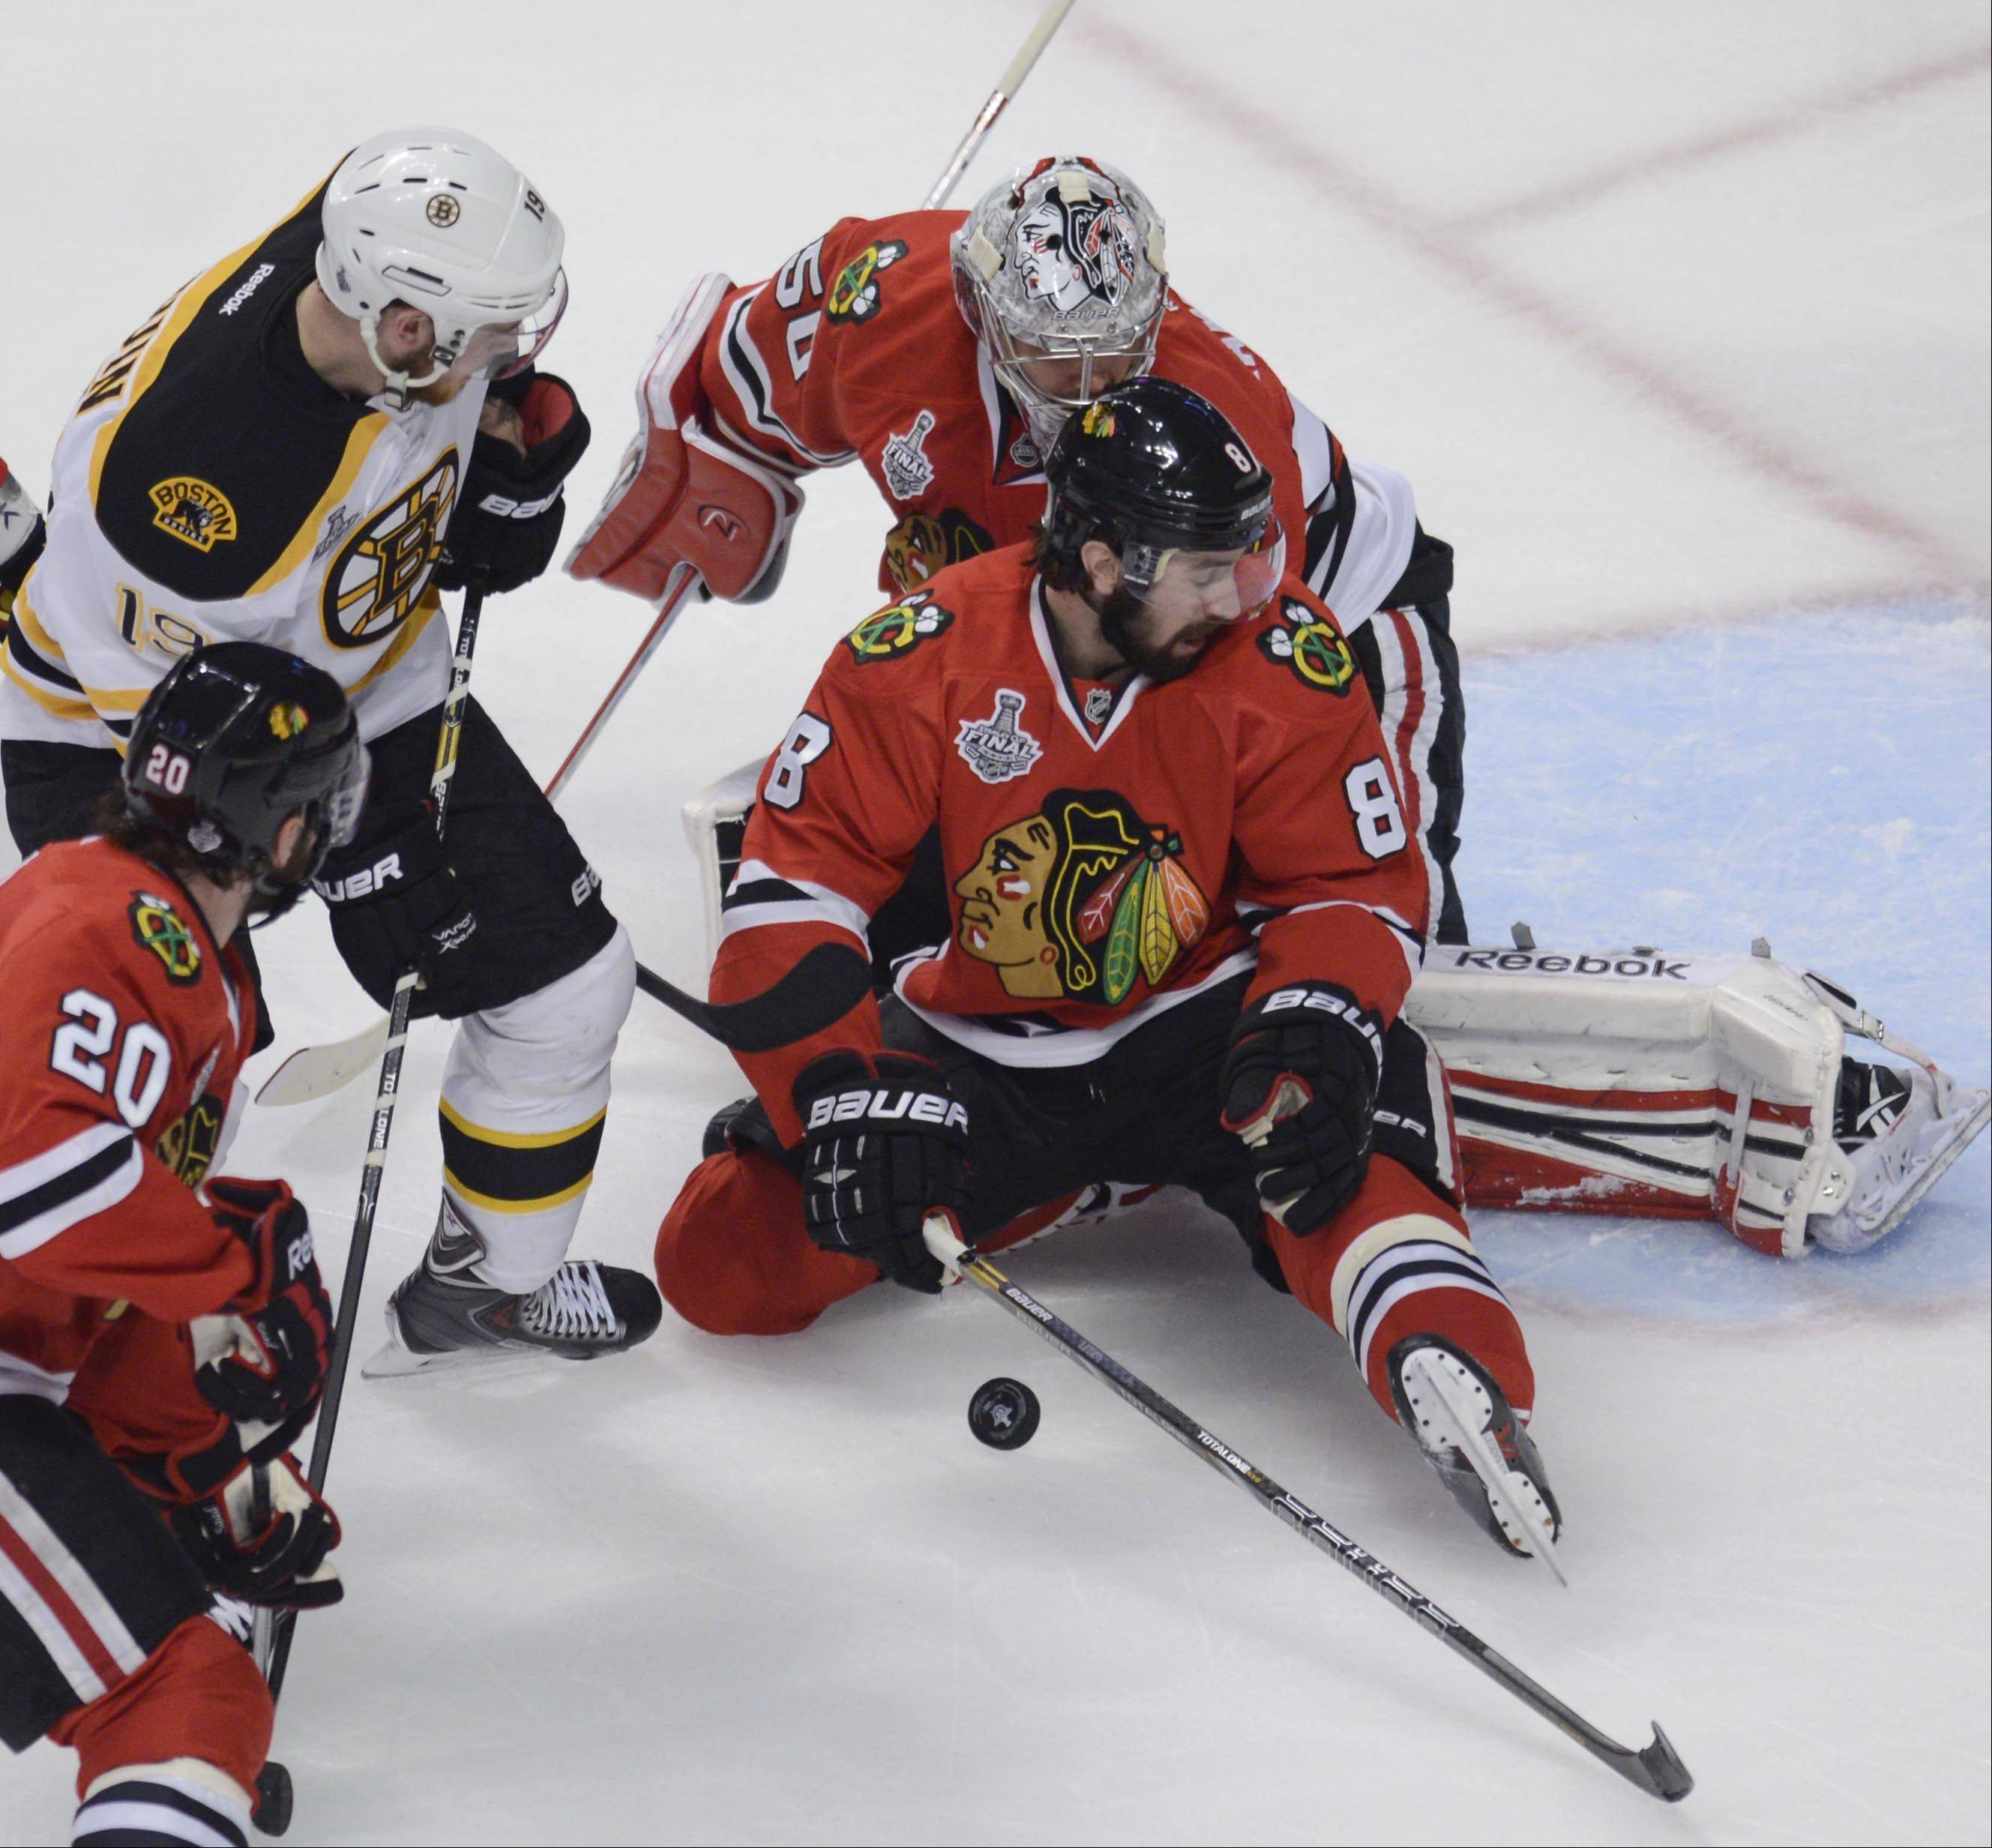 Blackhawks defenseman Nick Leddy blocks a shot in front of goalie Corey Crawford during Game 1 of the Stanley Cup Final against the Bruins.